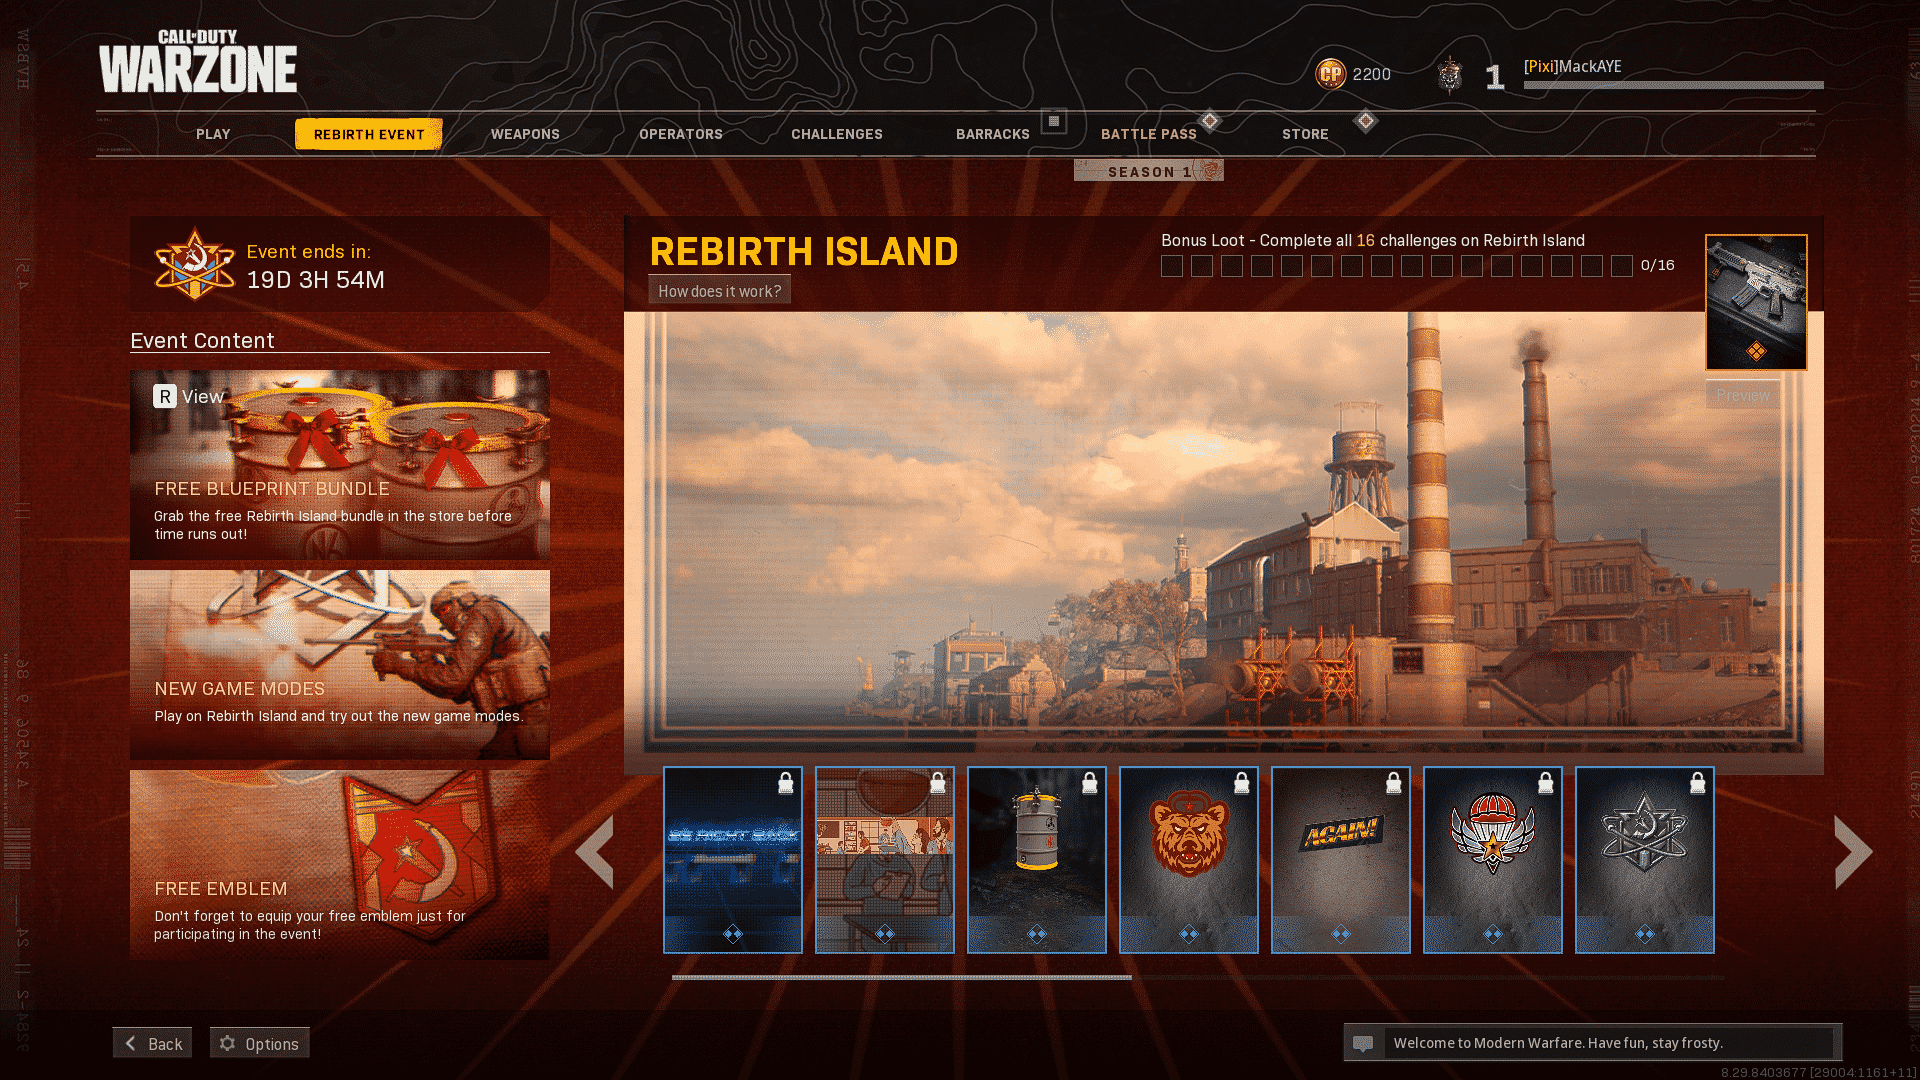 Rebirth Island Event in Call of Duty Warzone